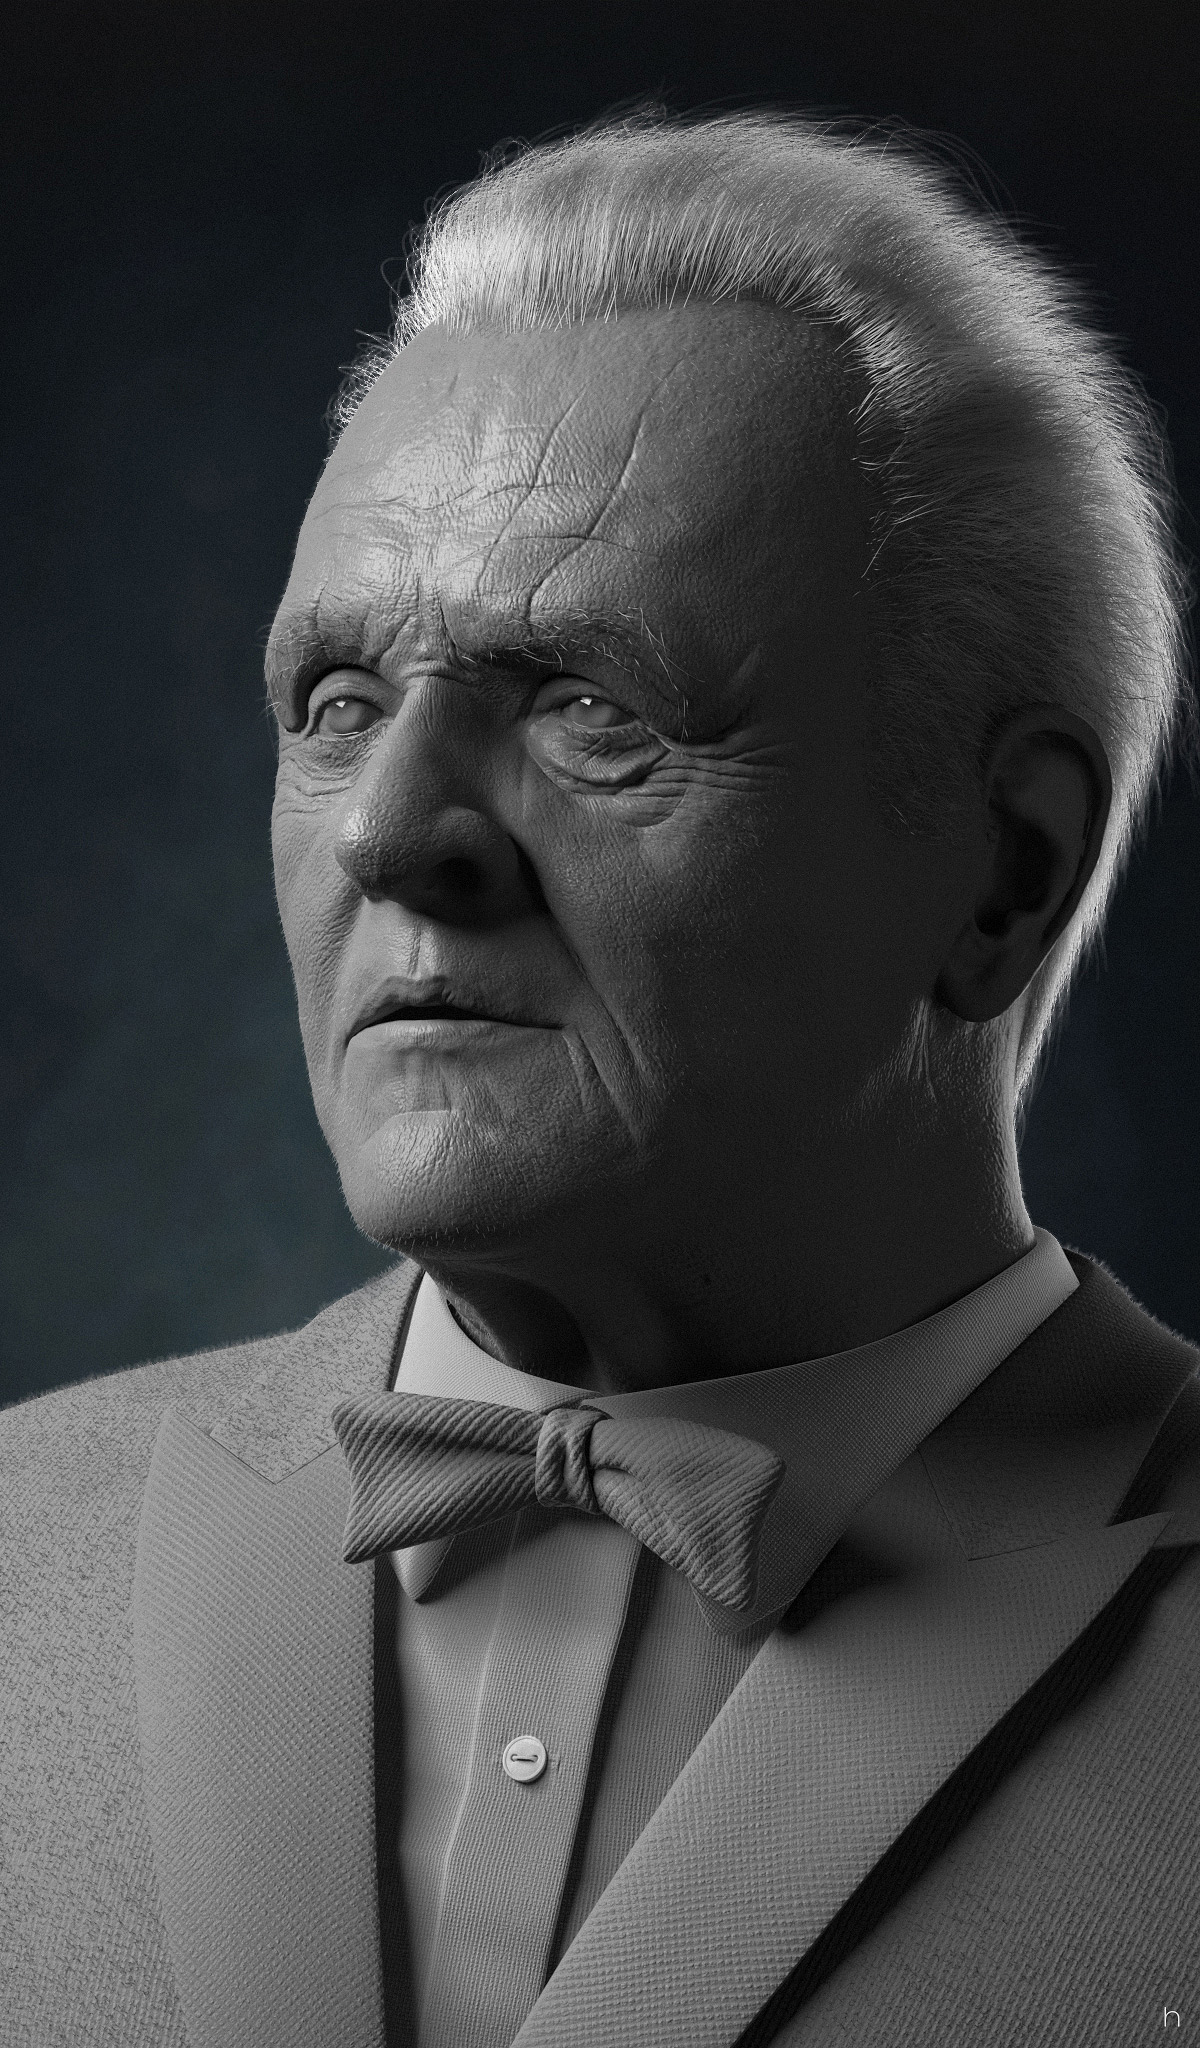 anthony_hopkins_by_hossimo_side_model.jpg